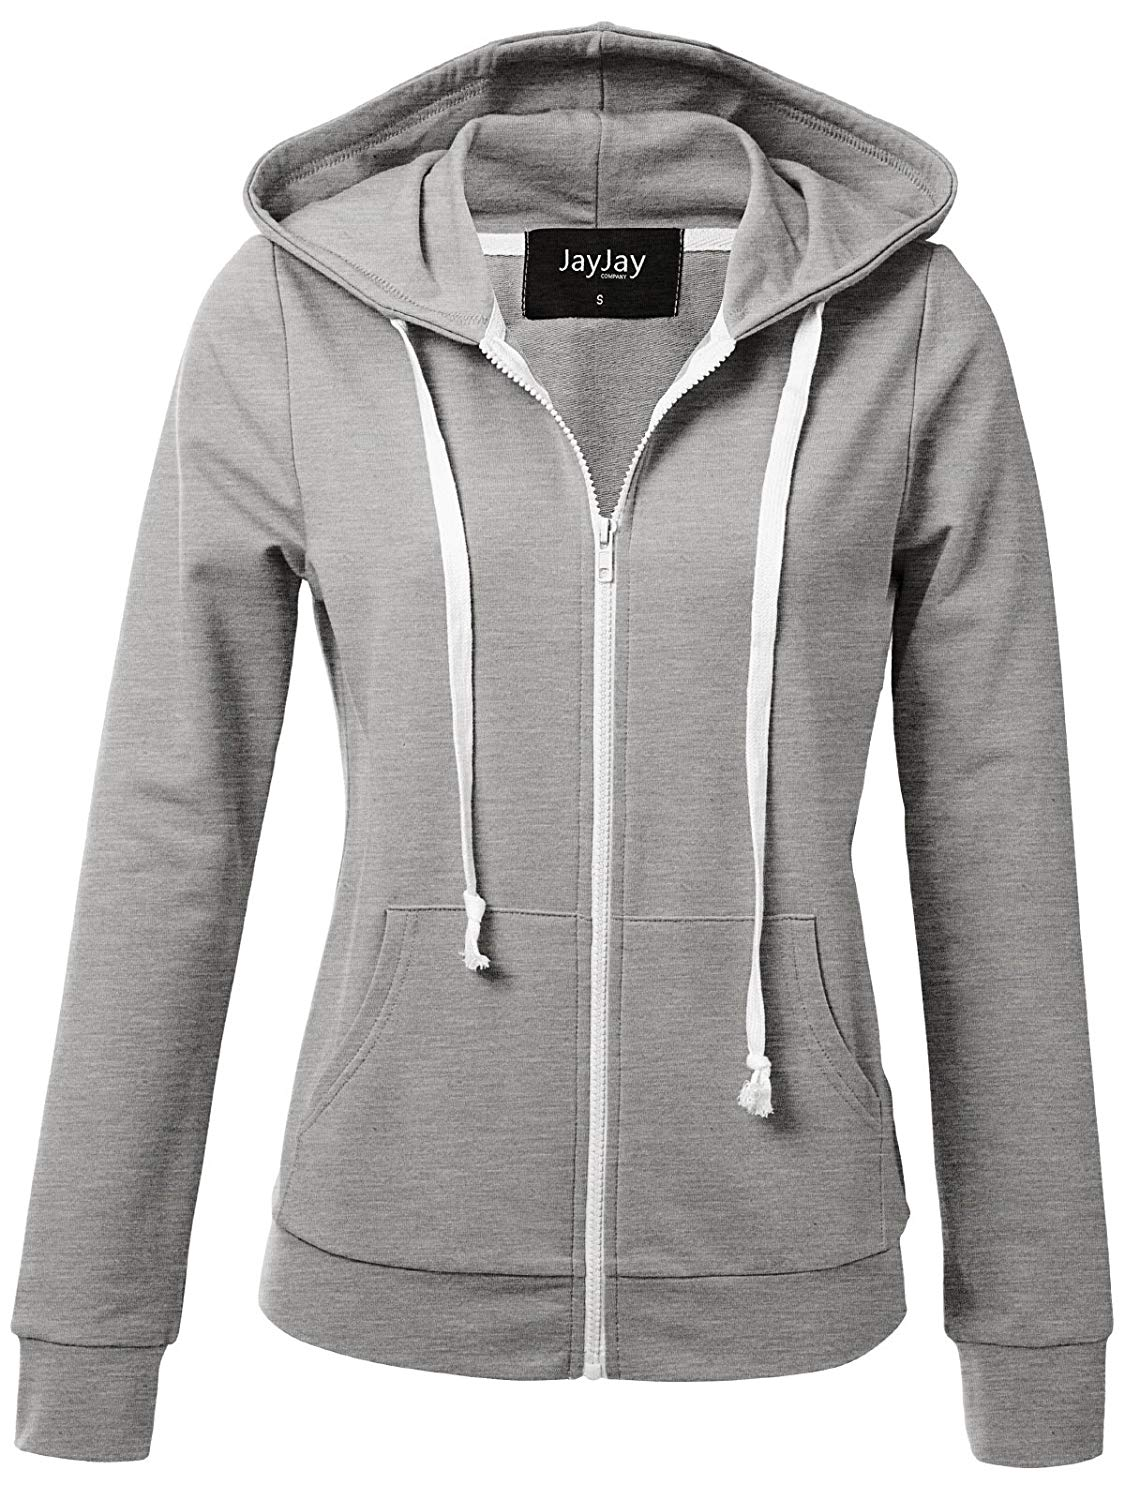 Get Quotations · JayJay Women Athlete Stretchy Full Zip Jersey Fashion  Running Hoodie Long Sleeve Jacket 33188b1ea